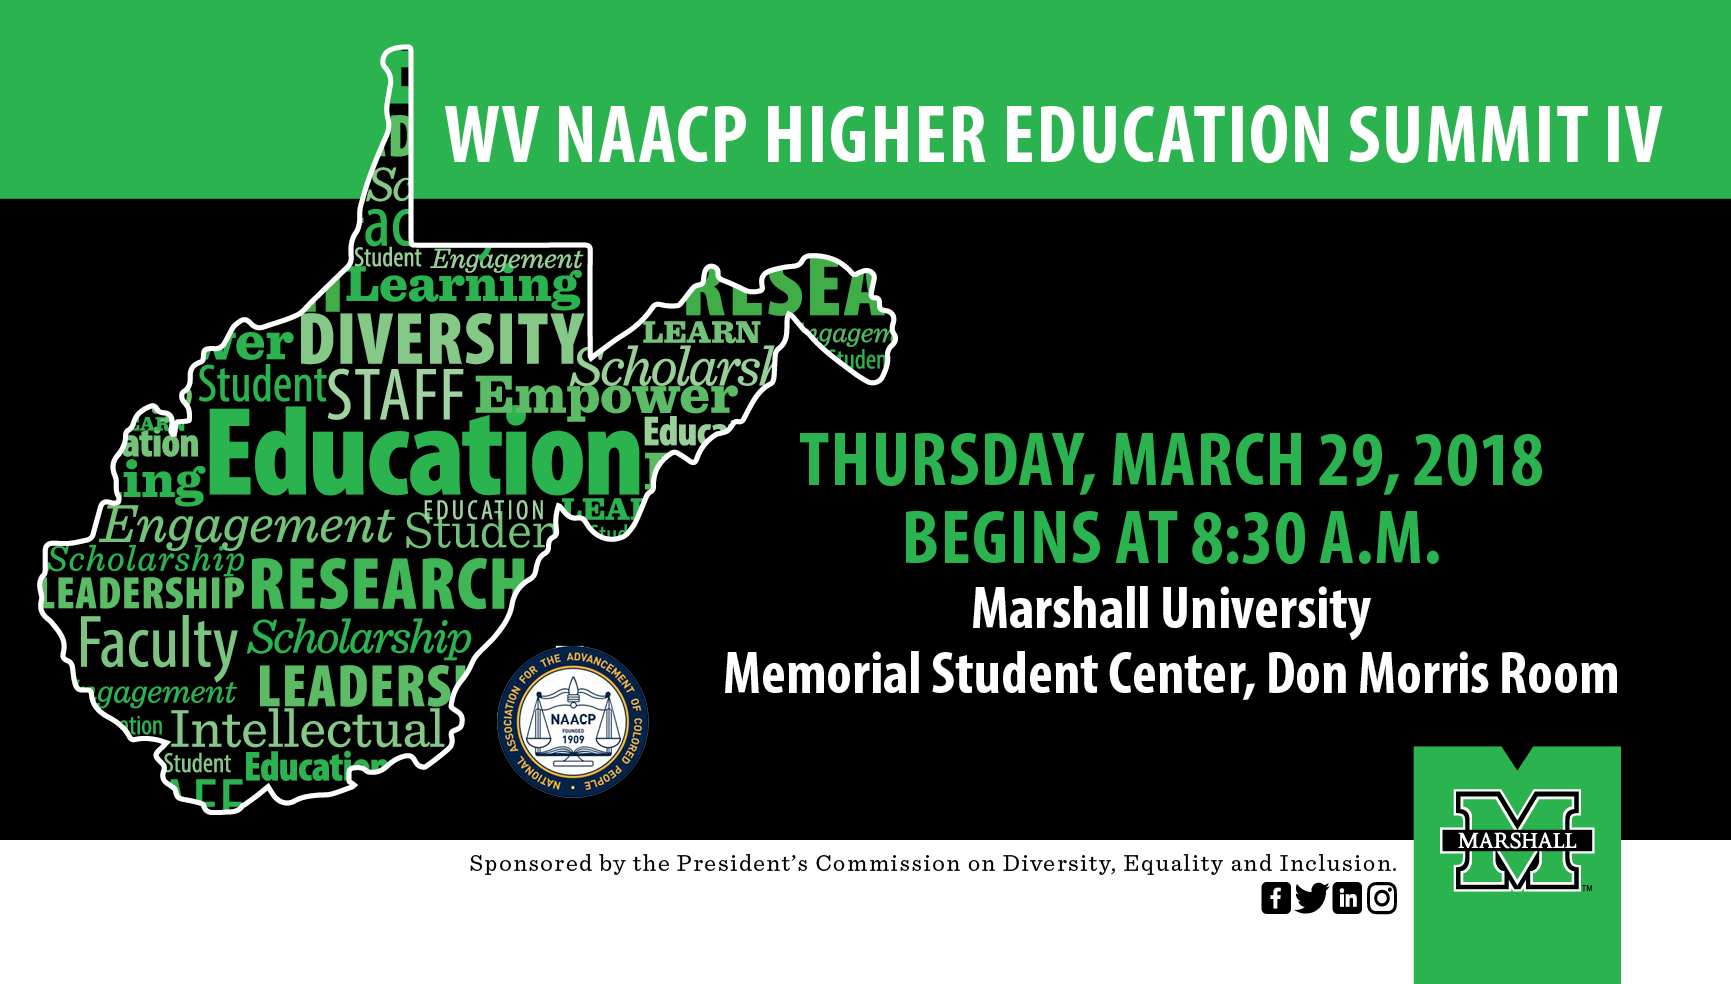 WV NAACP Higher Education Summit IV